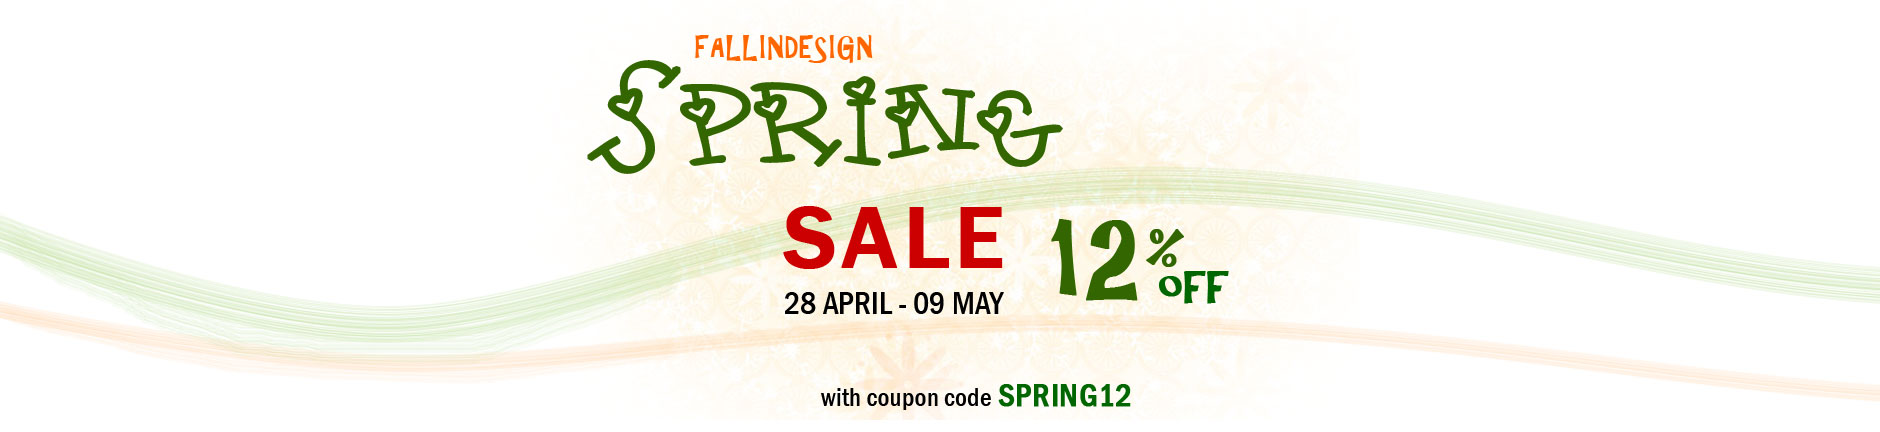 Fallindesign Spring sale 12% OFF